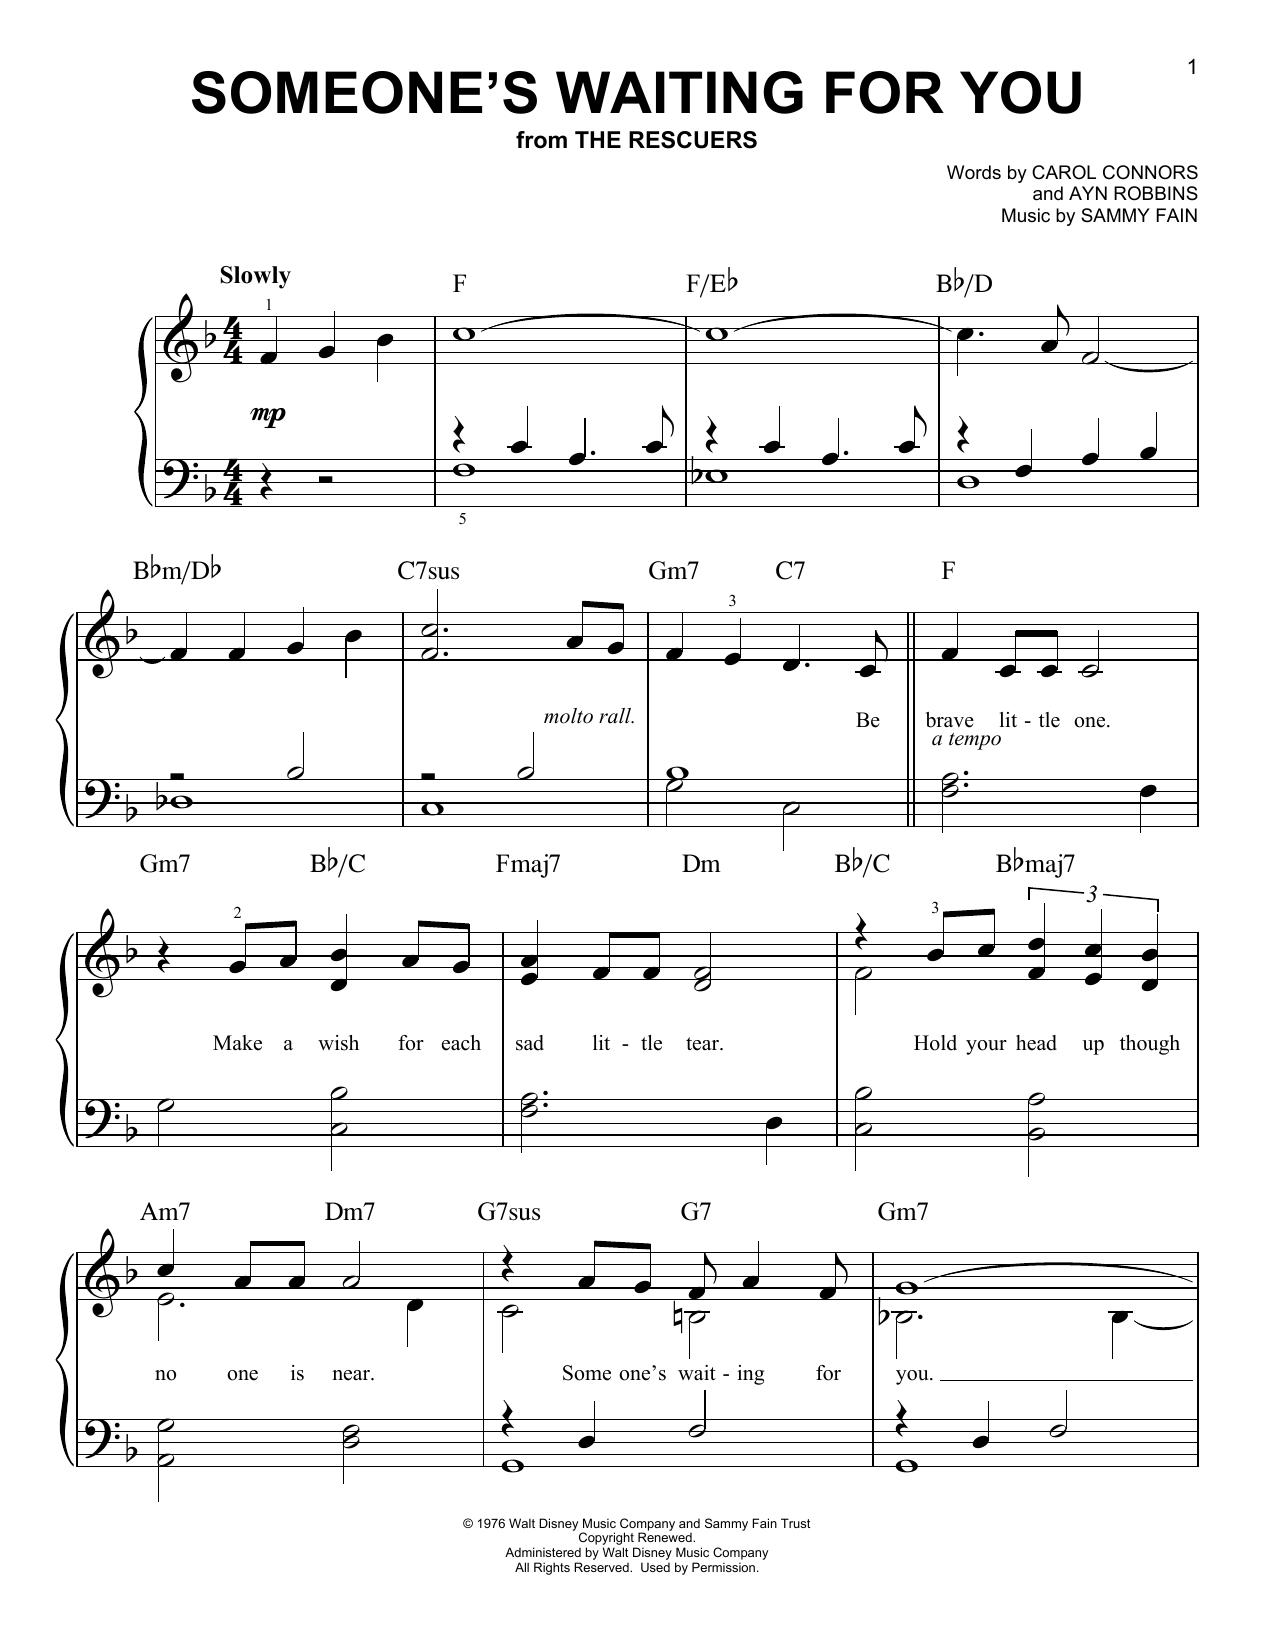 Ayn Robbins Someone's Waiting For You sheet music notes and chords. Download Printable PDF.